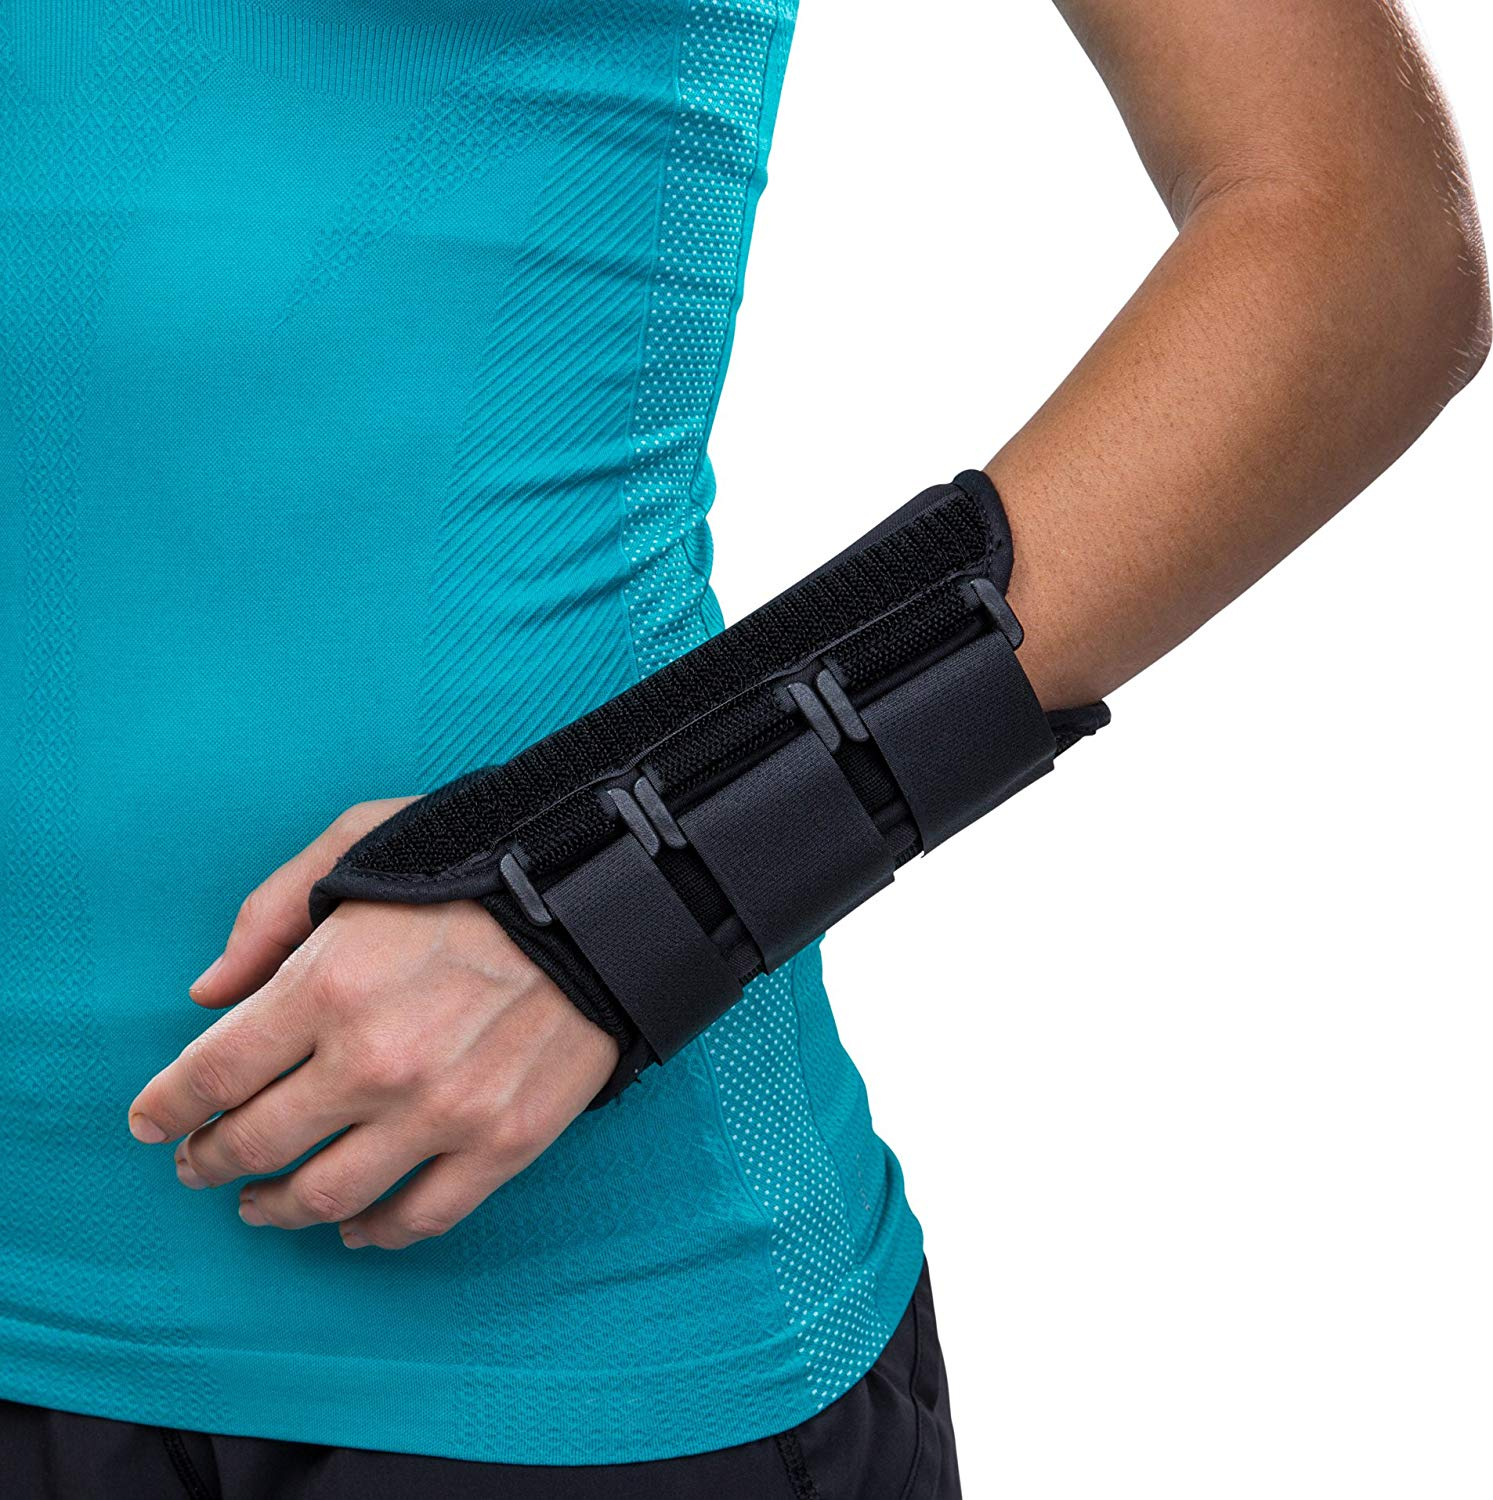 Thumb And Wrist Wrap With Adjustable Straps